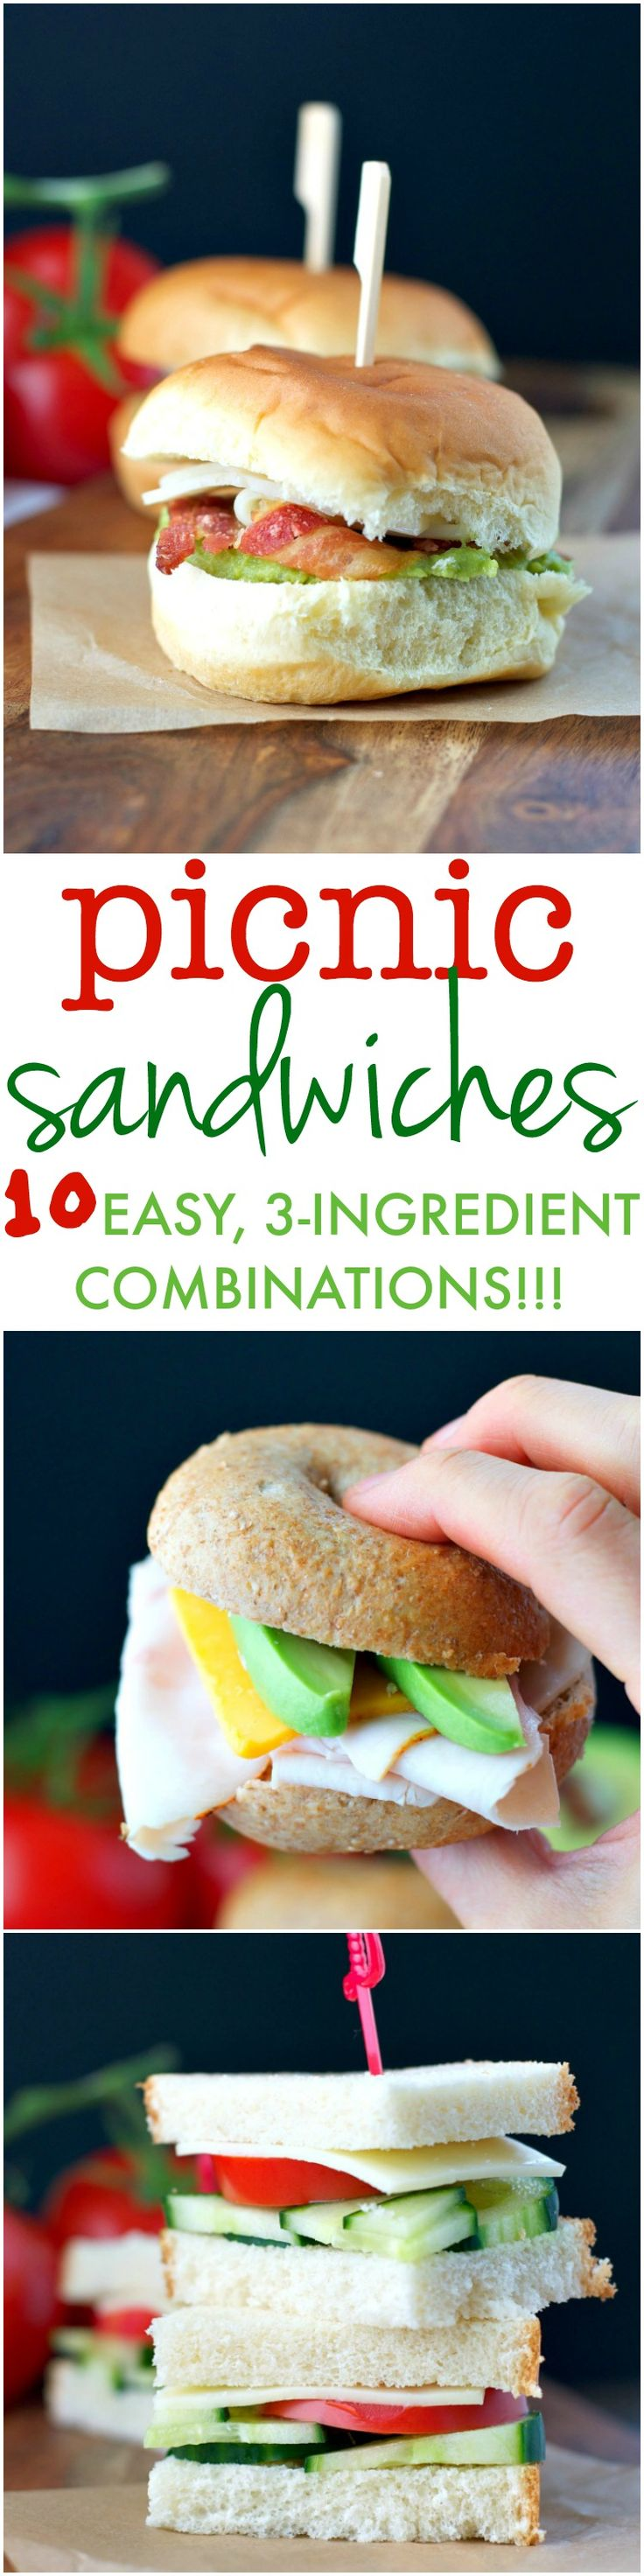 Hiking through the woods, hosting a backyard party, traveling on a road trip, or enjoying a sunny beach day...here are 10 Easy, 3-Ingredient Sandwich Combinations that are sure to please everyone in your crowd! #ad